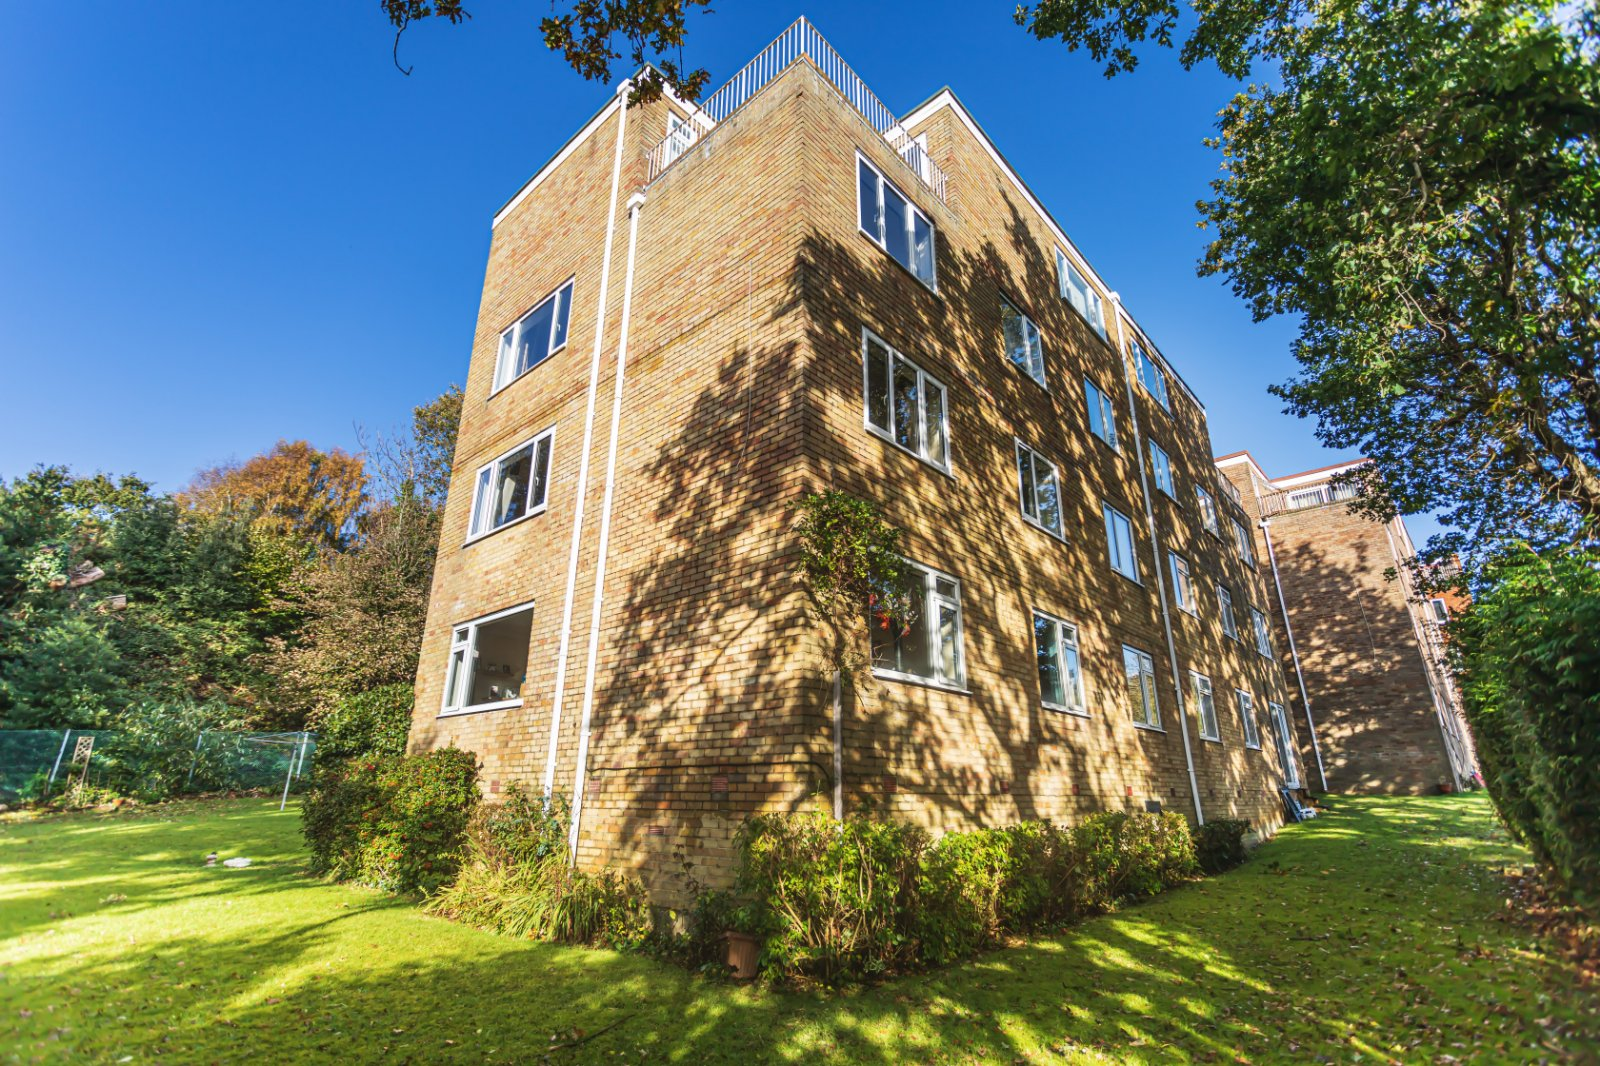 2 bed apartment for sale in Steepdene, Lower Parkstone 0